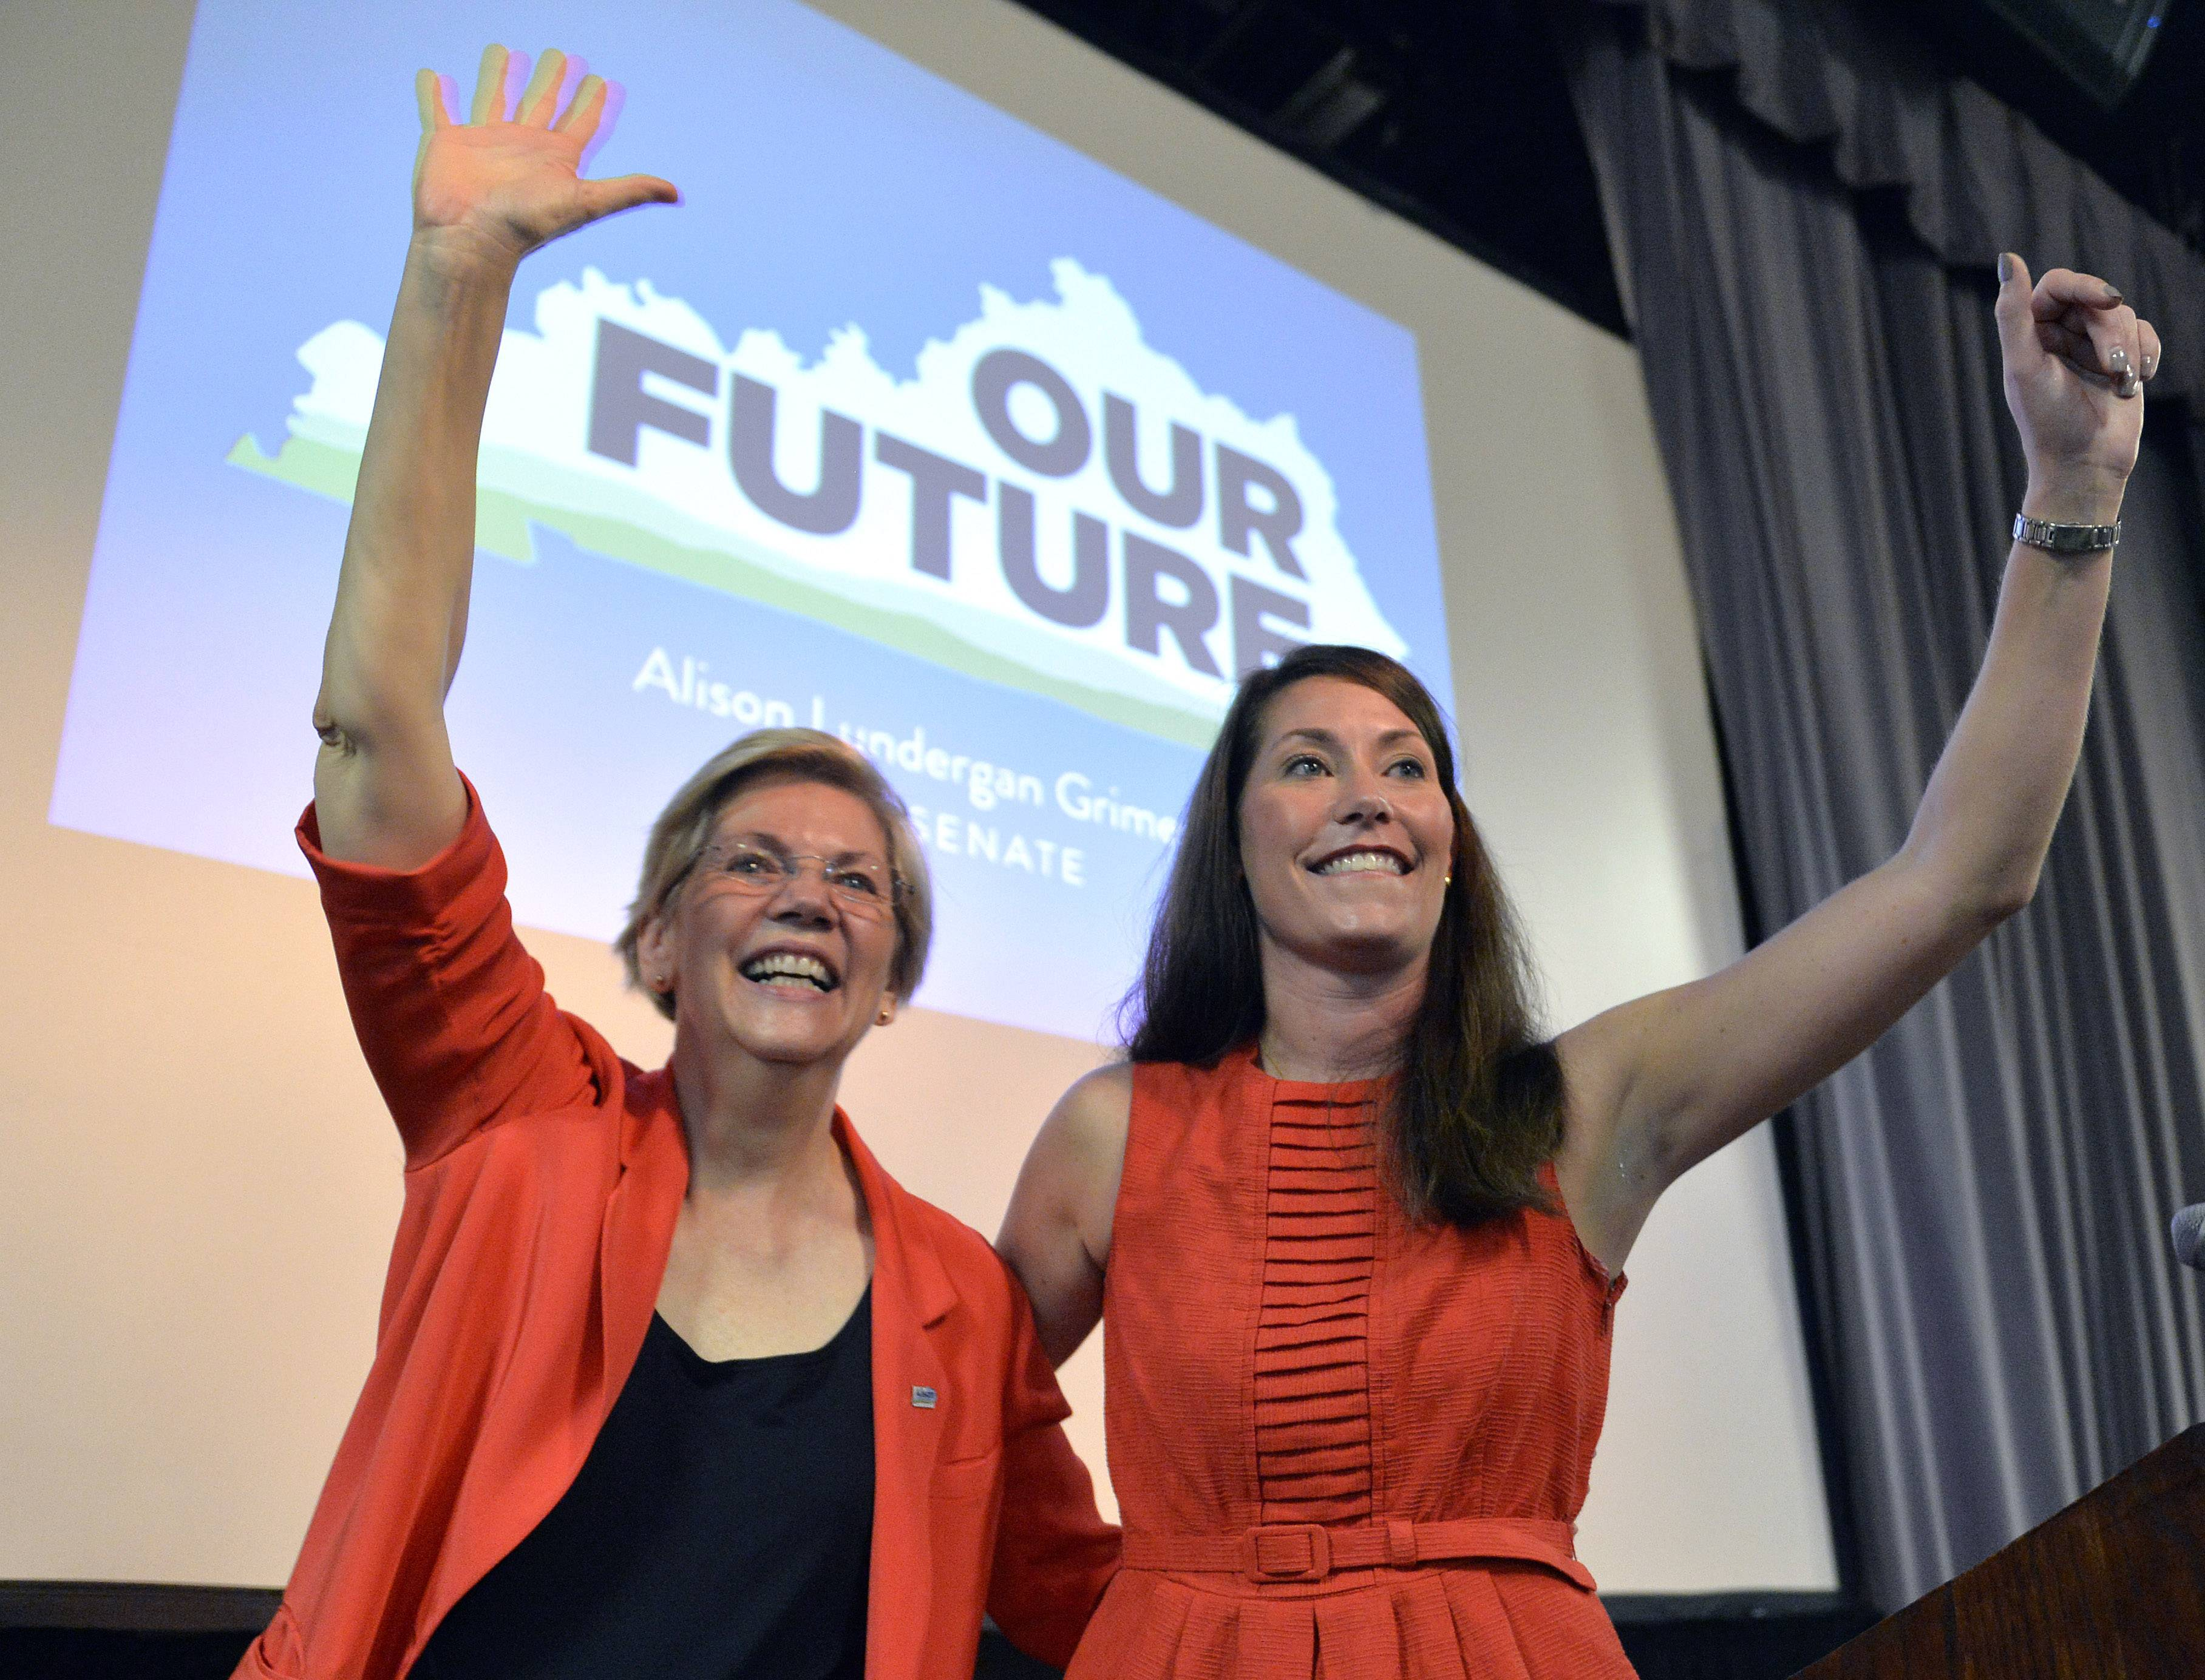 Sen. Elizabeth Warren, left, and Kentucky Democratic Senatorial candidate Alison Lundergan Grimes wave to supporters at at rally in Louisville, Ky., June 29. Warren is quickly becoming a top Democrat fund-raising and campaigning powerhouse.